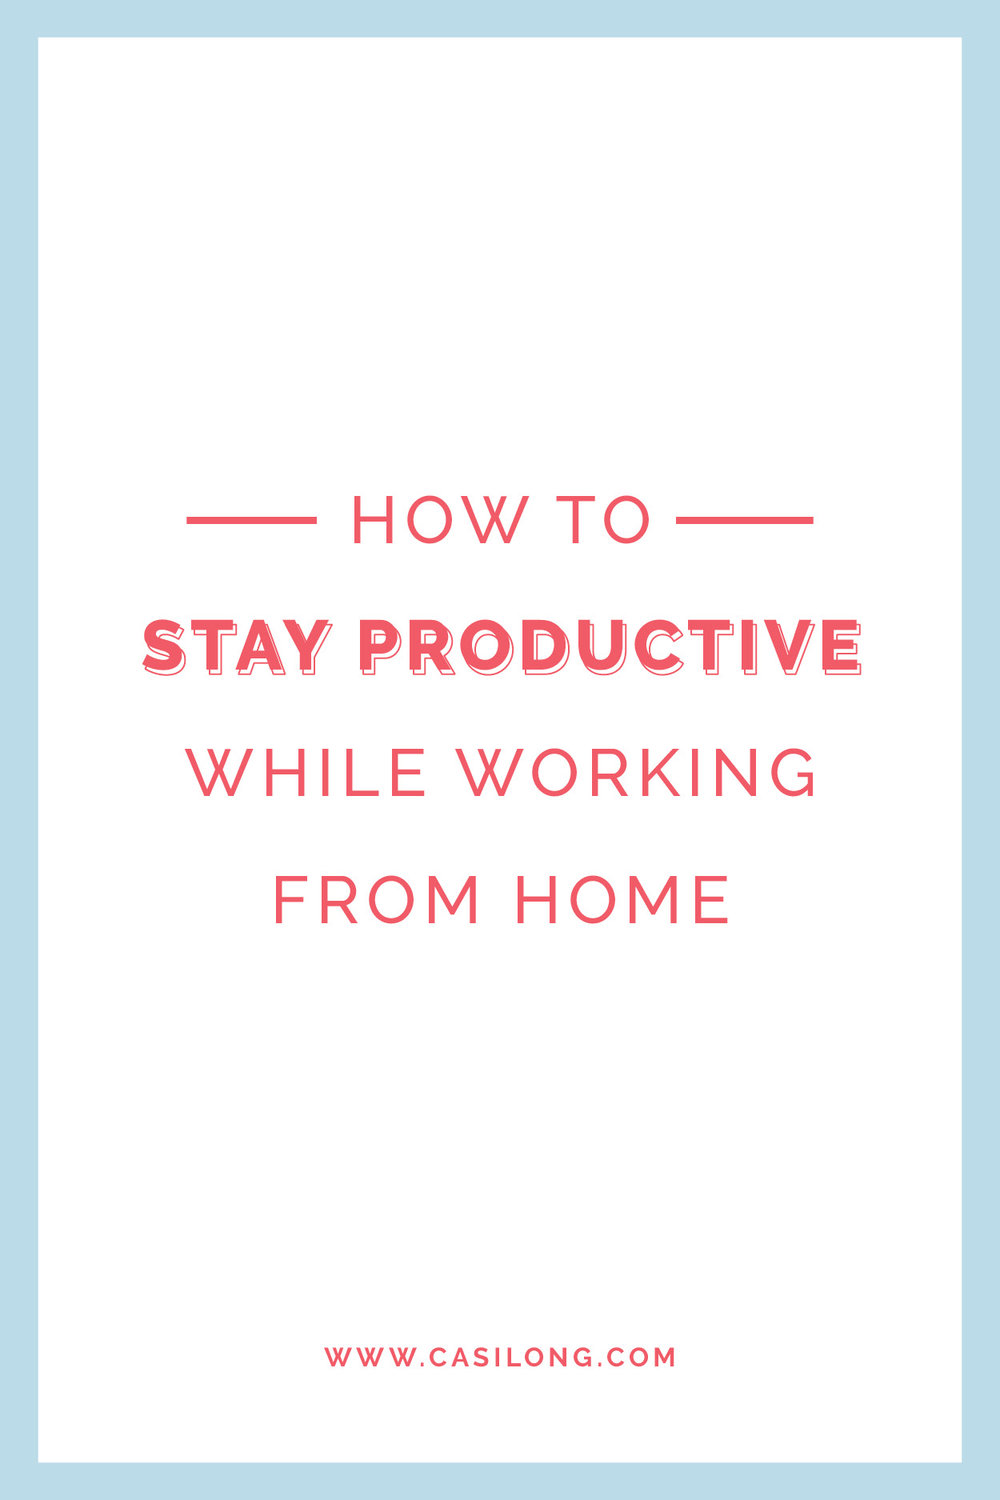 How to Stay Productive While Working From Home | Casilong.com/blog